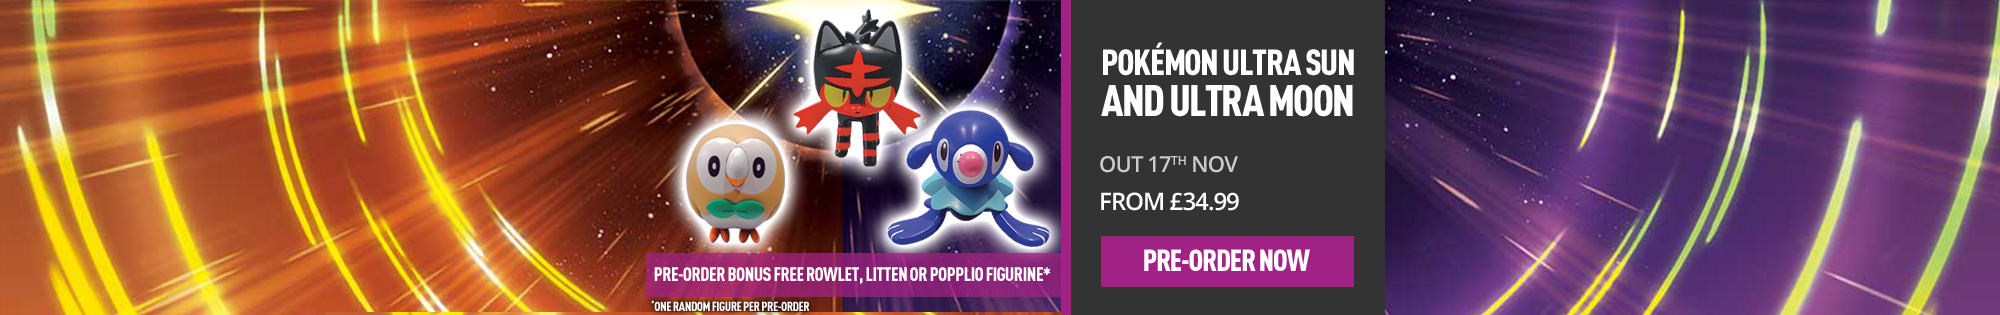 Free gift when you Pre-order Pokemon Ultra Sun or Ultra Moon! - Homepage Banner